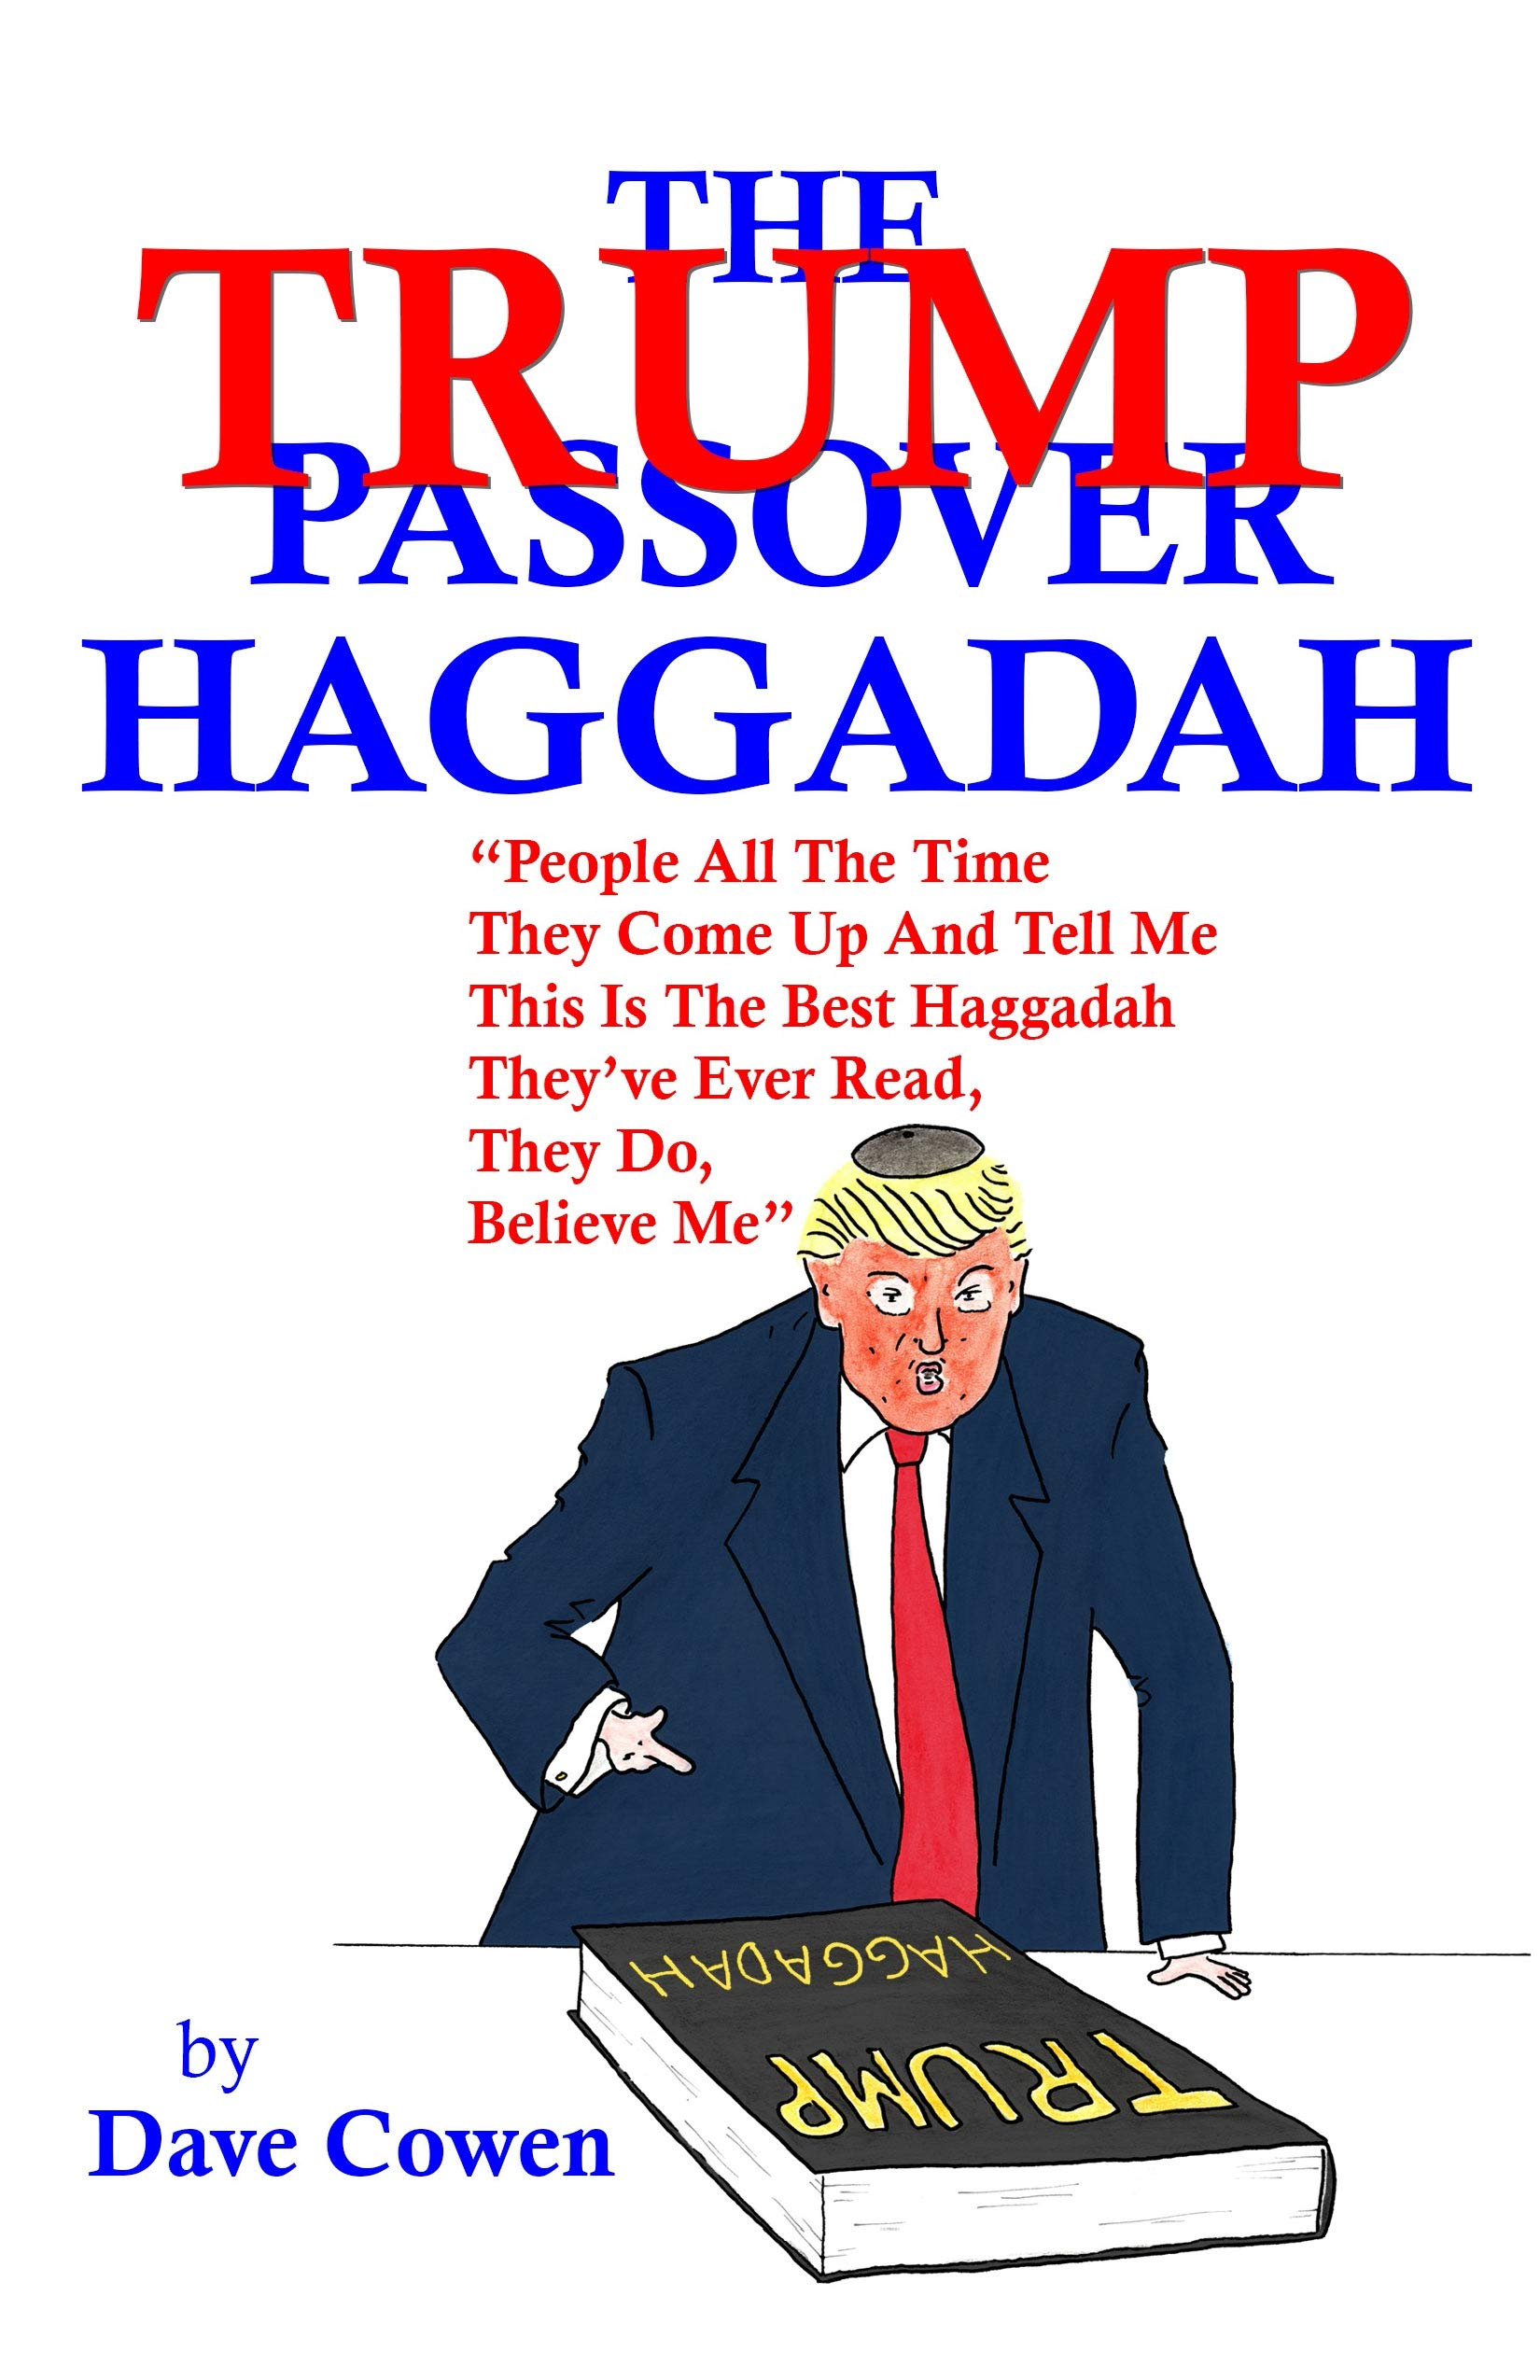 THE TRUMP PASSOVER HAGGADAH  'People All The Time They Come Up And Tell Me This Is The Best Haggadah They've Ever Read They Do Believe Me""